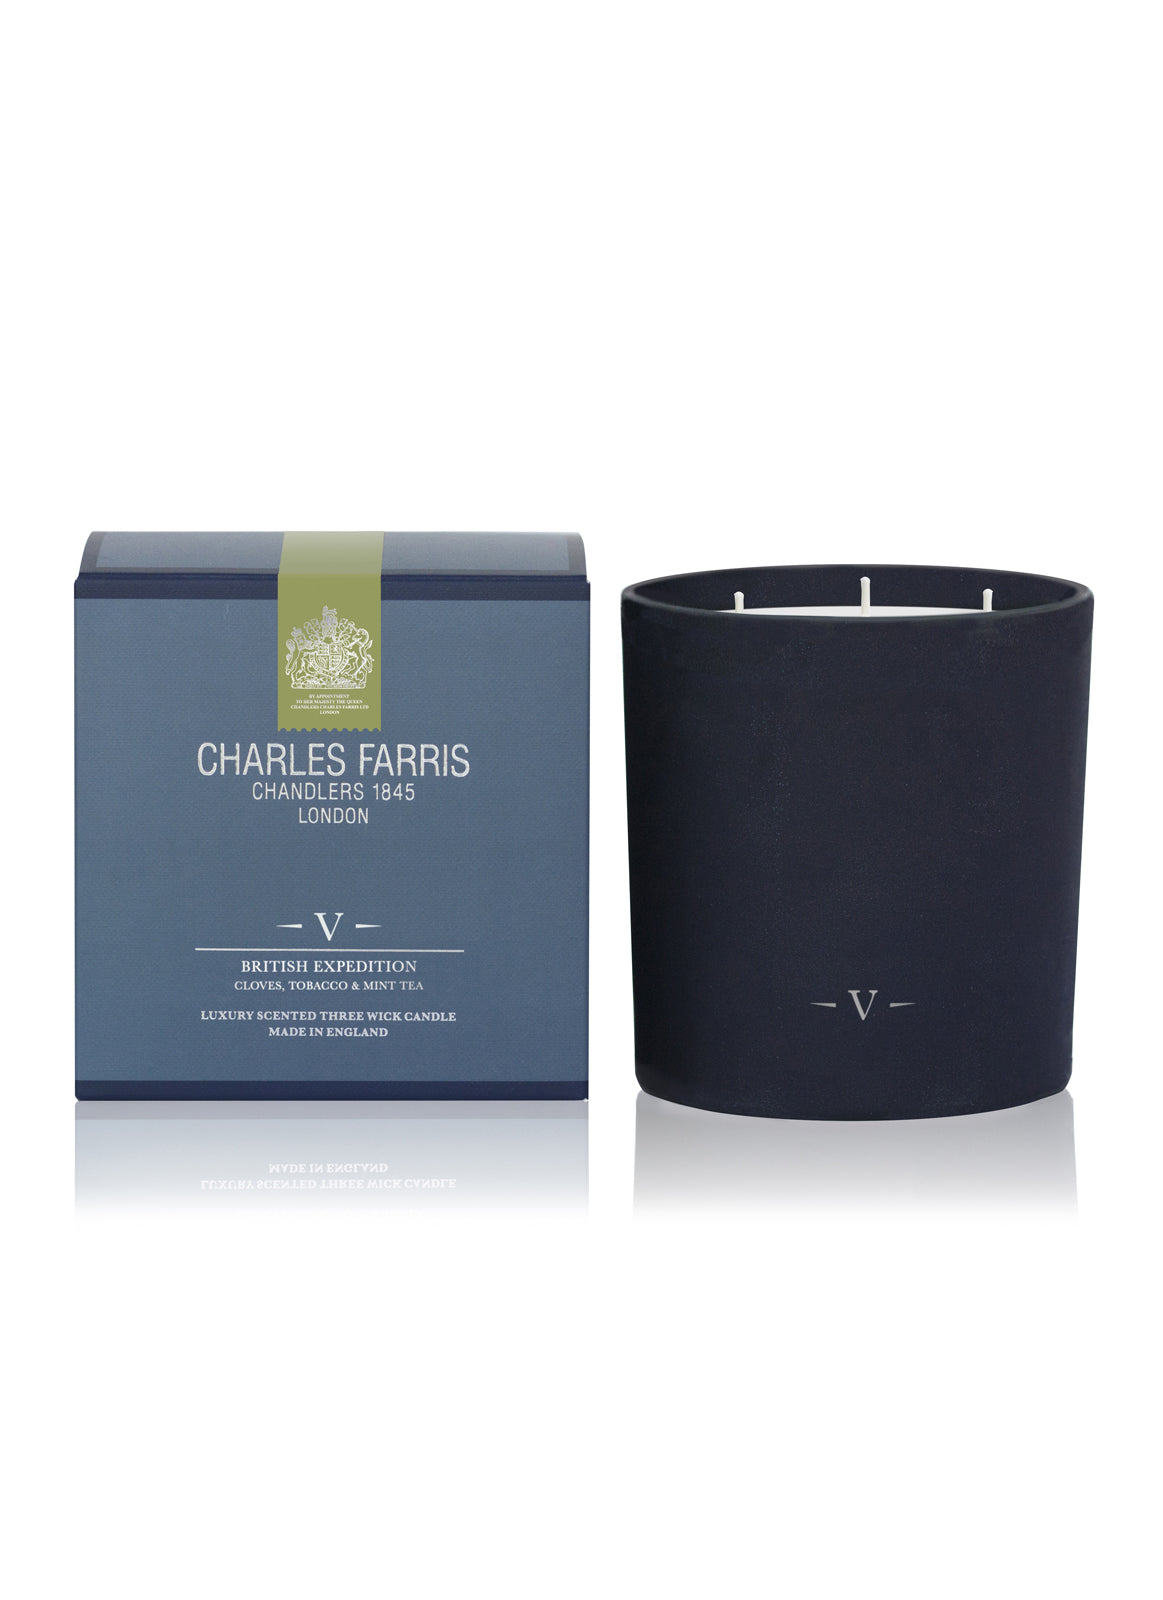 A 3-wick luxury scented candle in a dark blue jar.